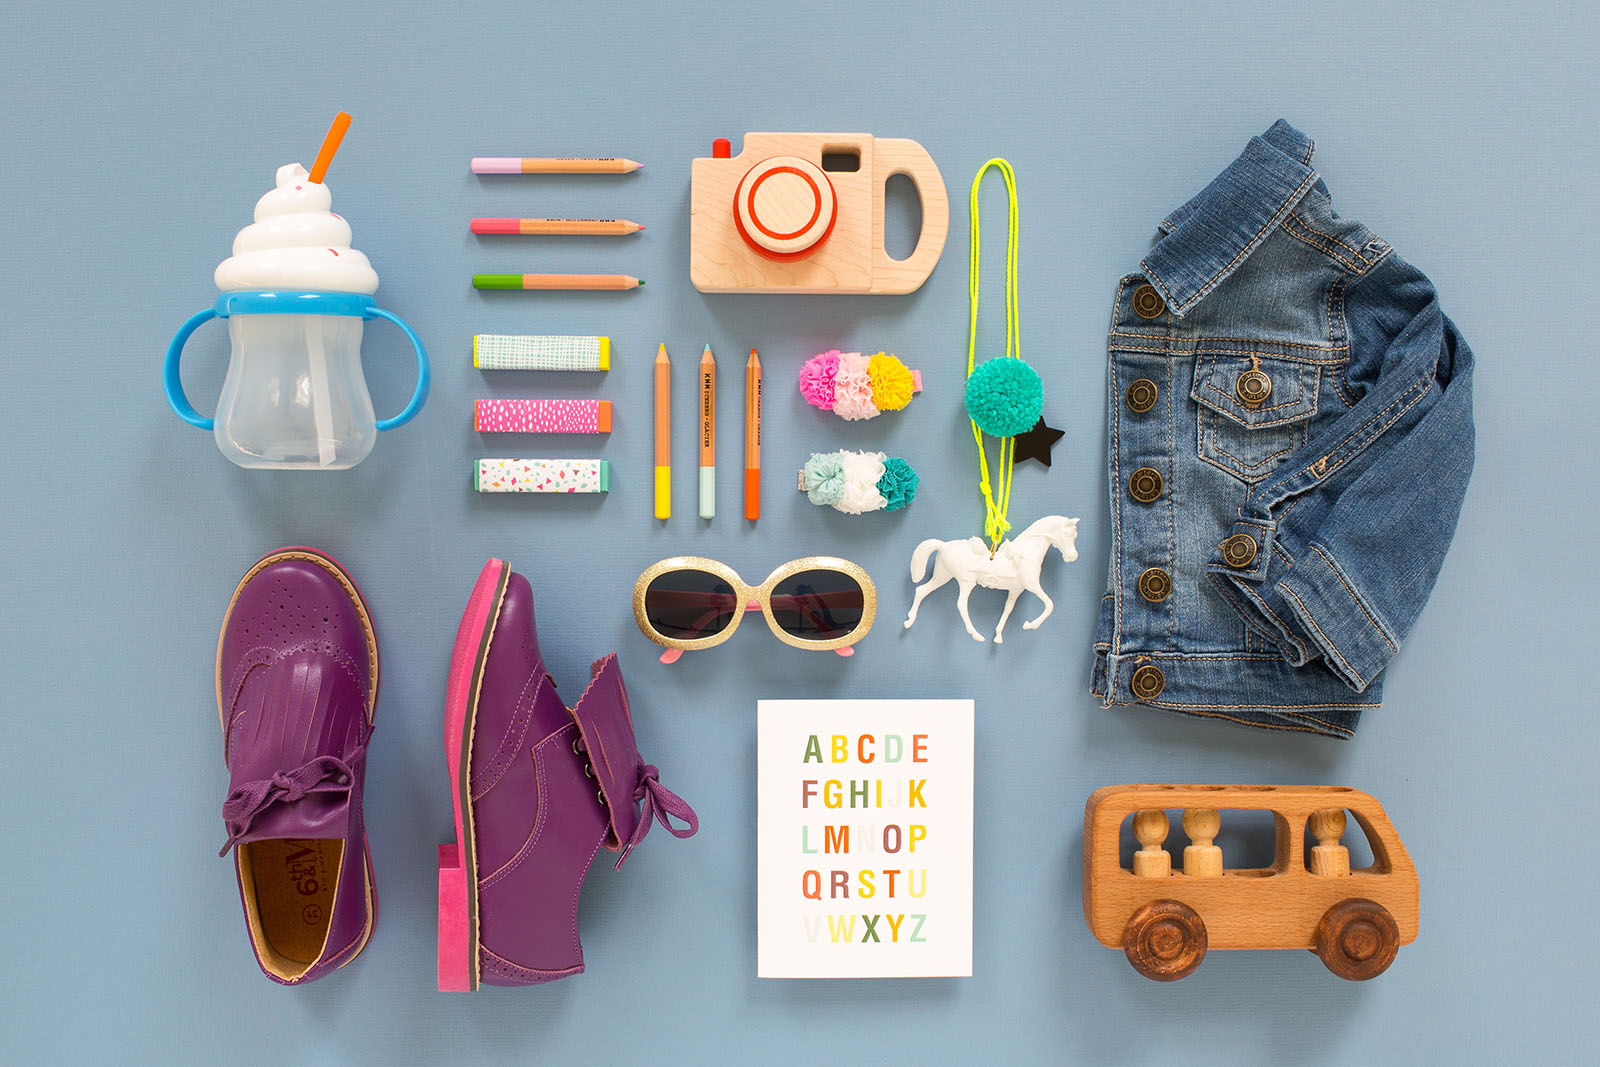 Dynamic flat lay images of childrens items